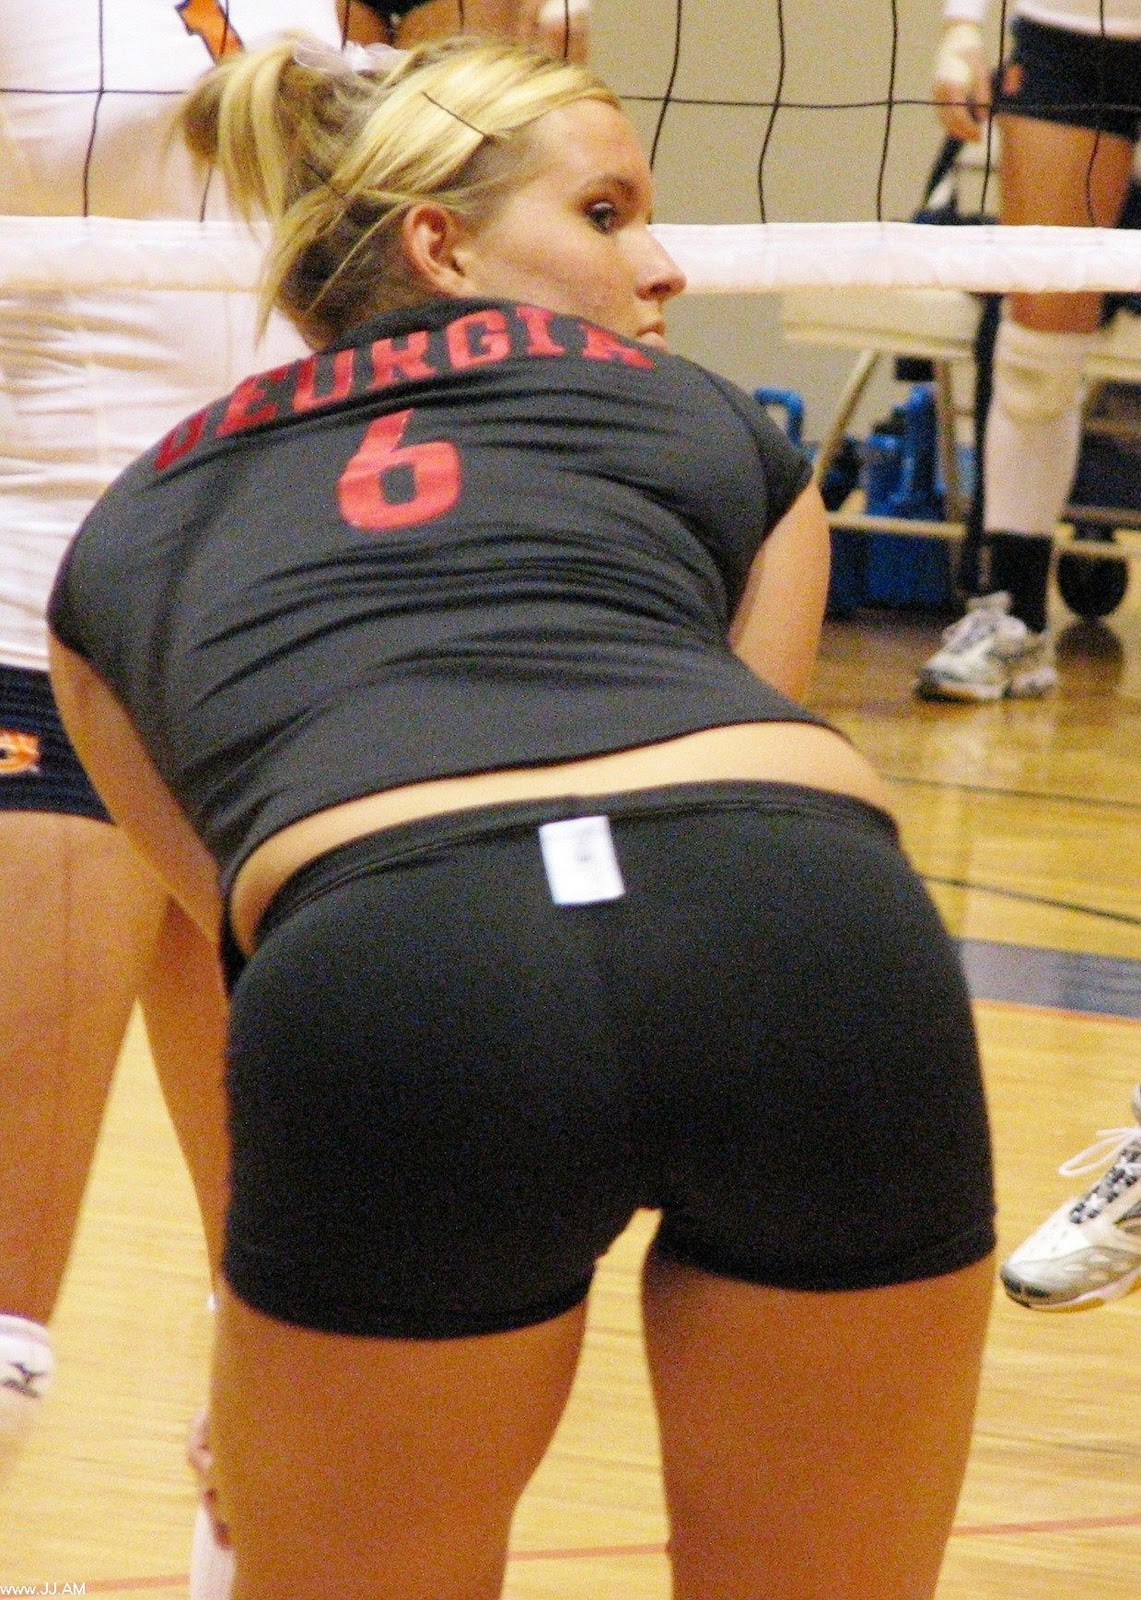 Volleyball girls asses